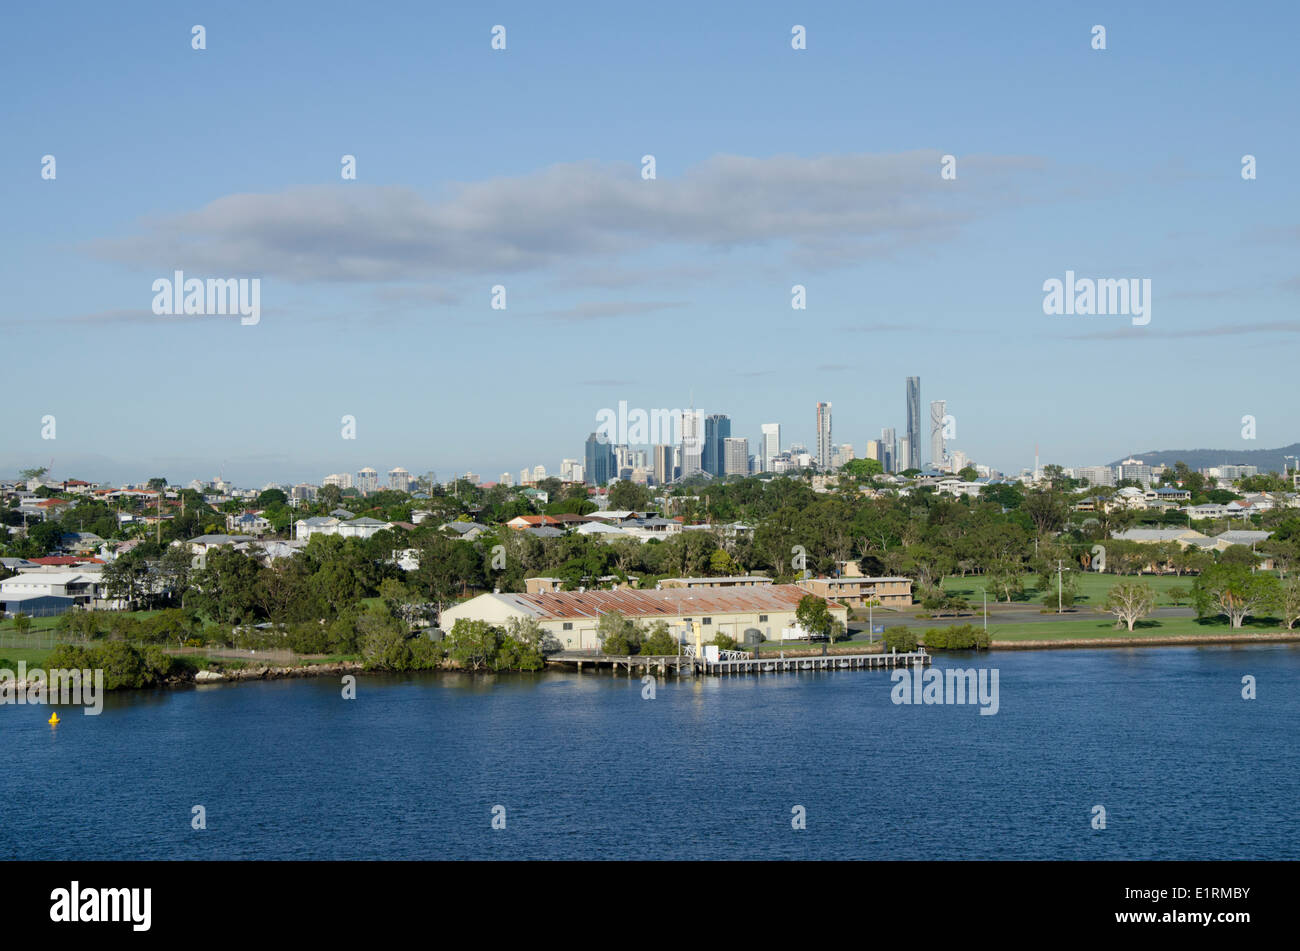 Australia, Queensland, capital city of Brisbane. Brisbane River view of downtown city skyline. - Stock Image